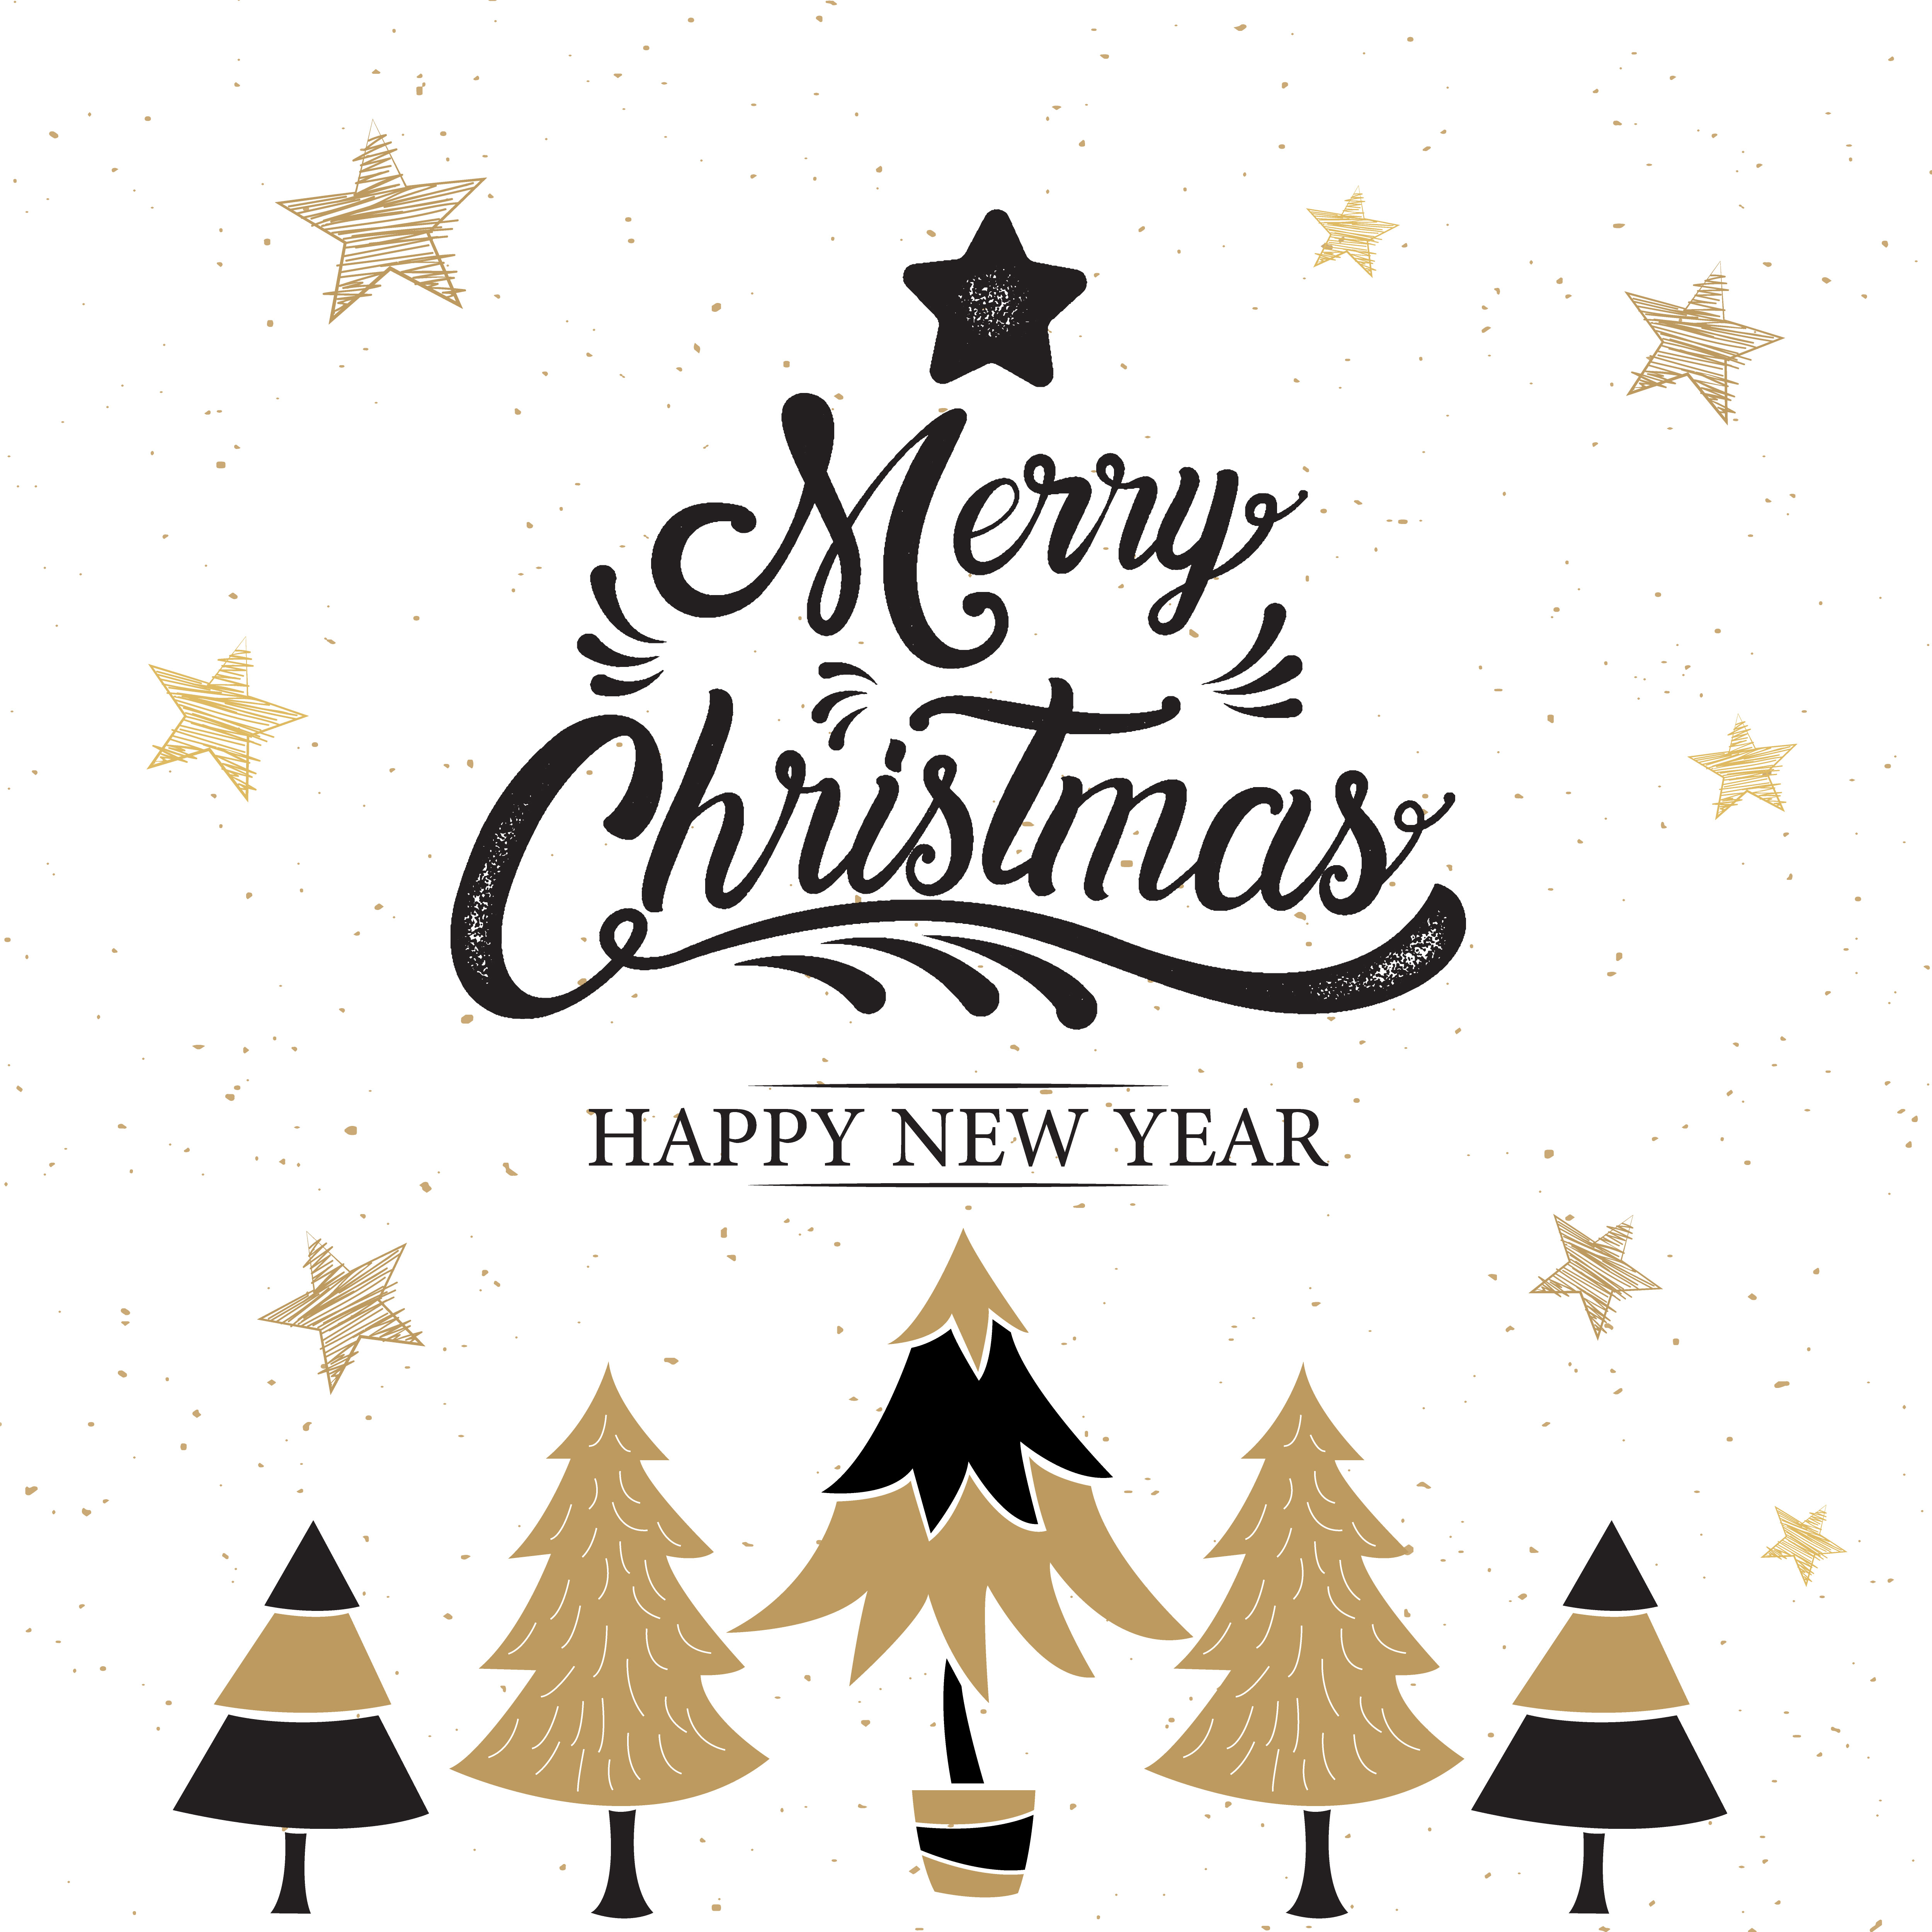 merry christmas happy new year logo with trees download free vectors clipart graphics vector art vecteezy